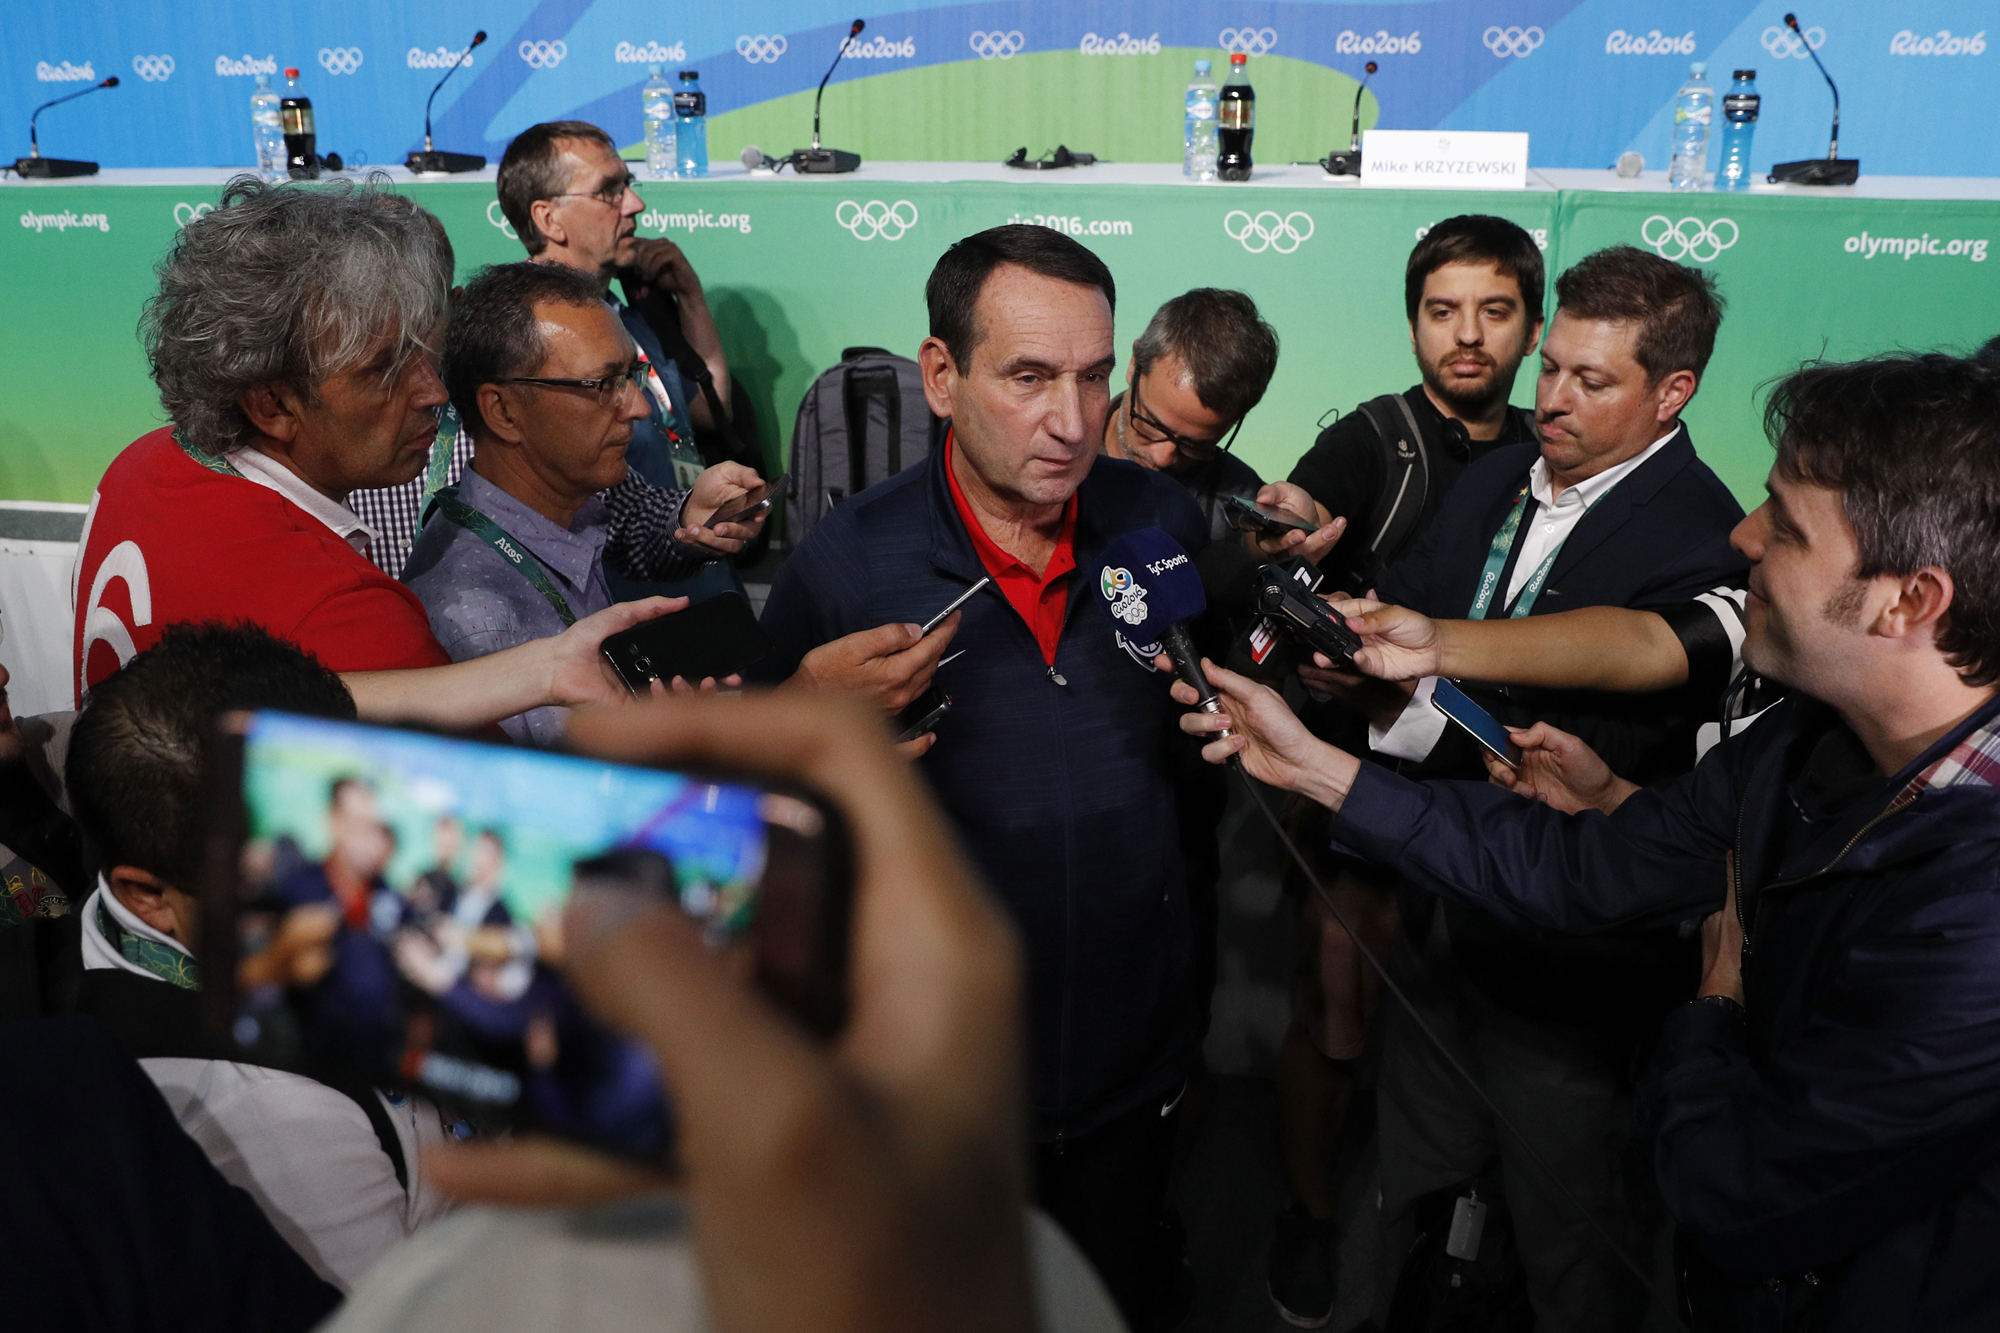 Team USA coach Mike Krzyzewski speaks to the media during a press conference during the Rio 2016 Summer Olympic Games at Main Press Center.